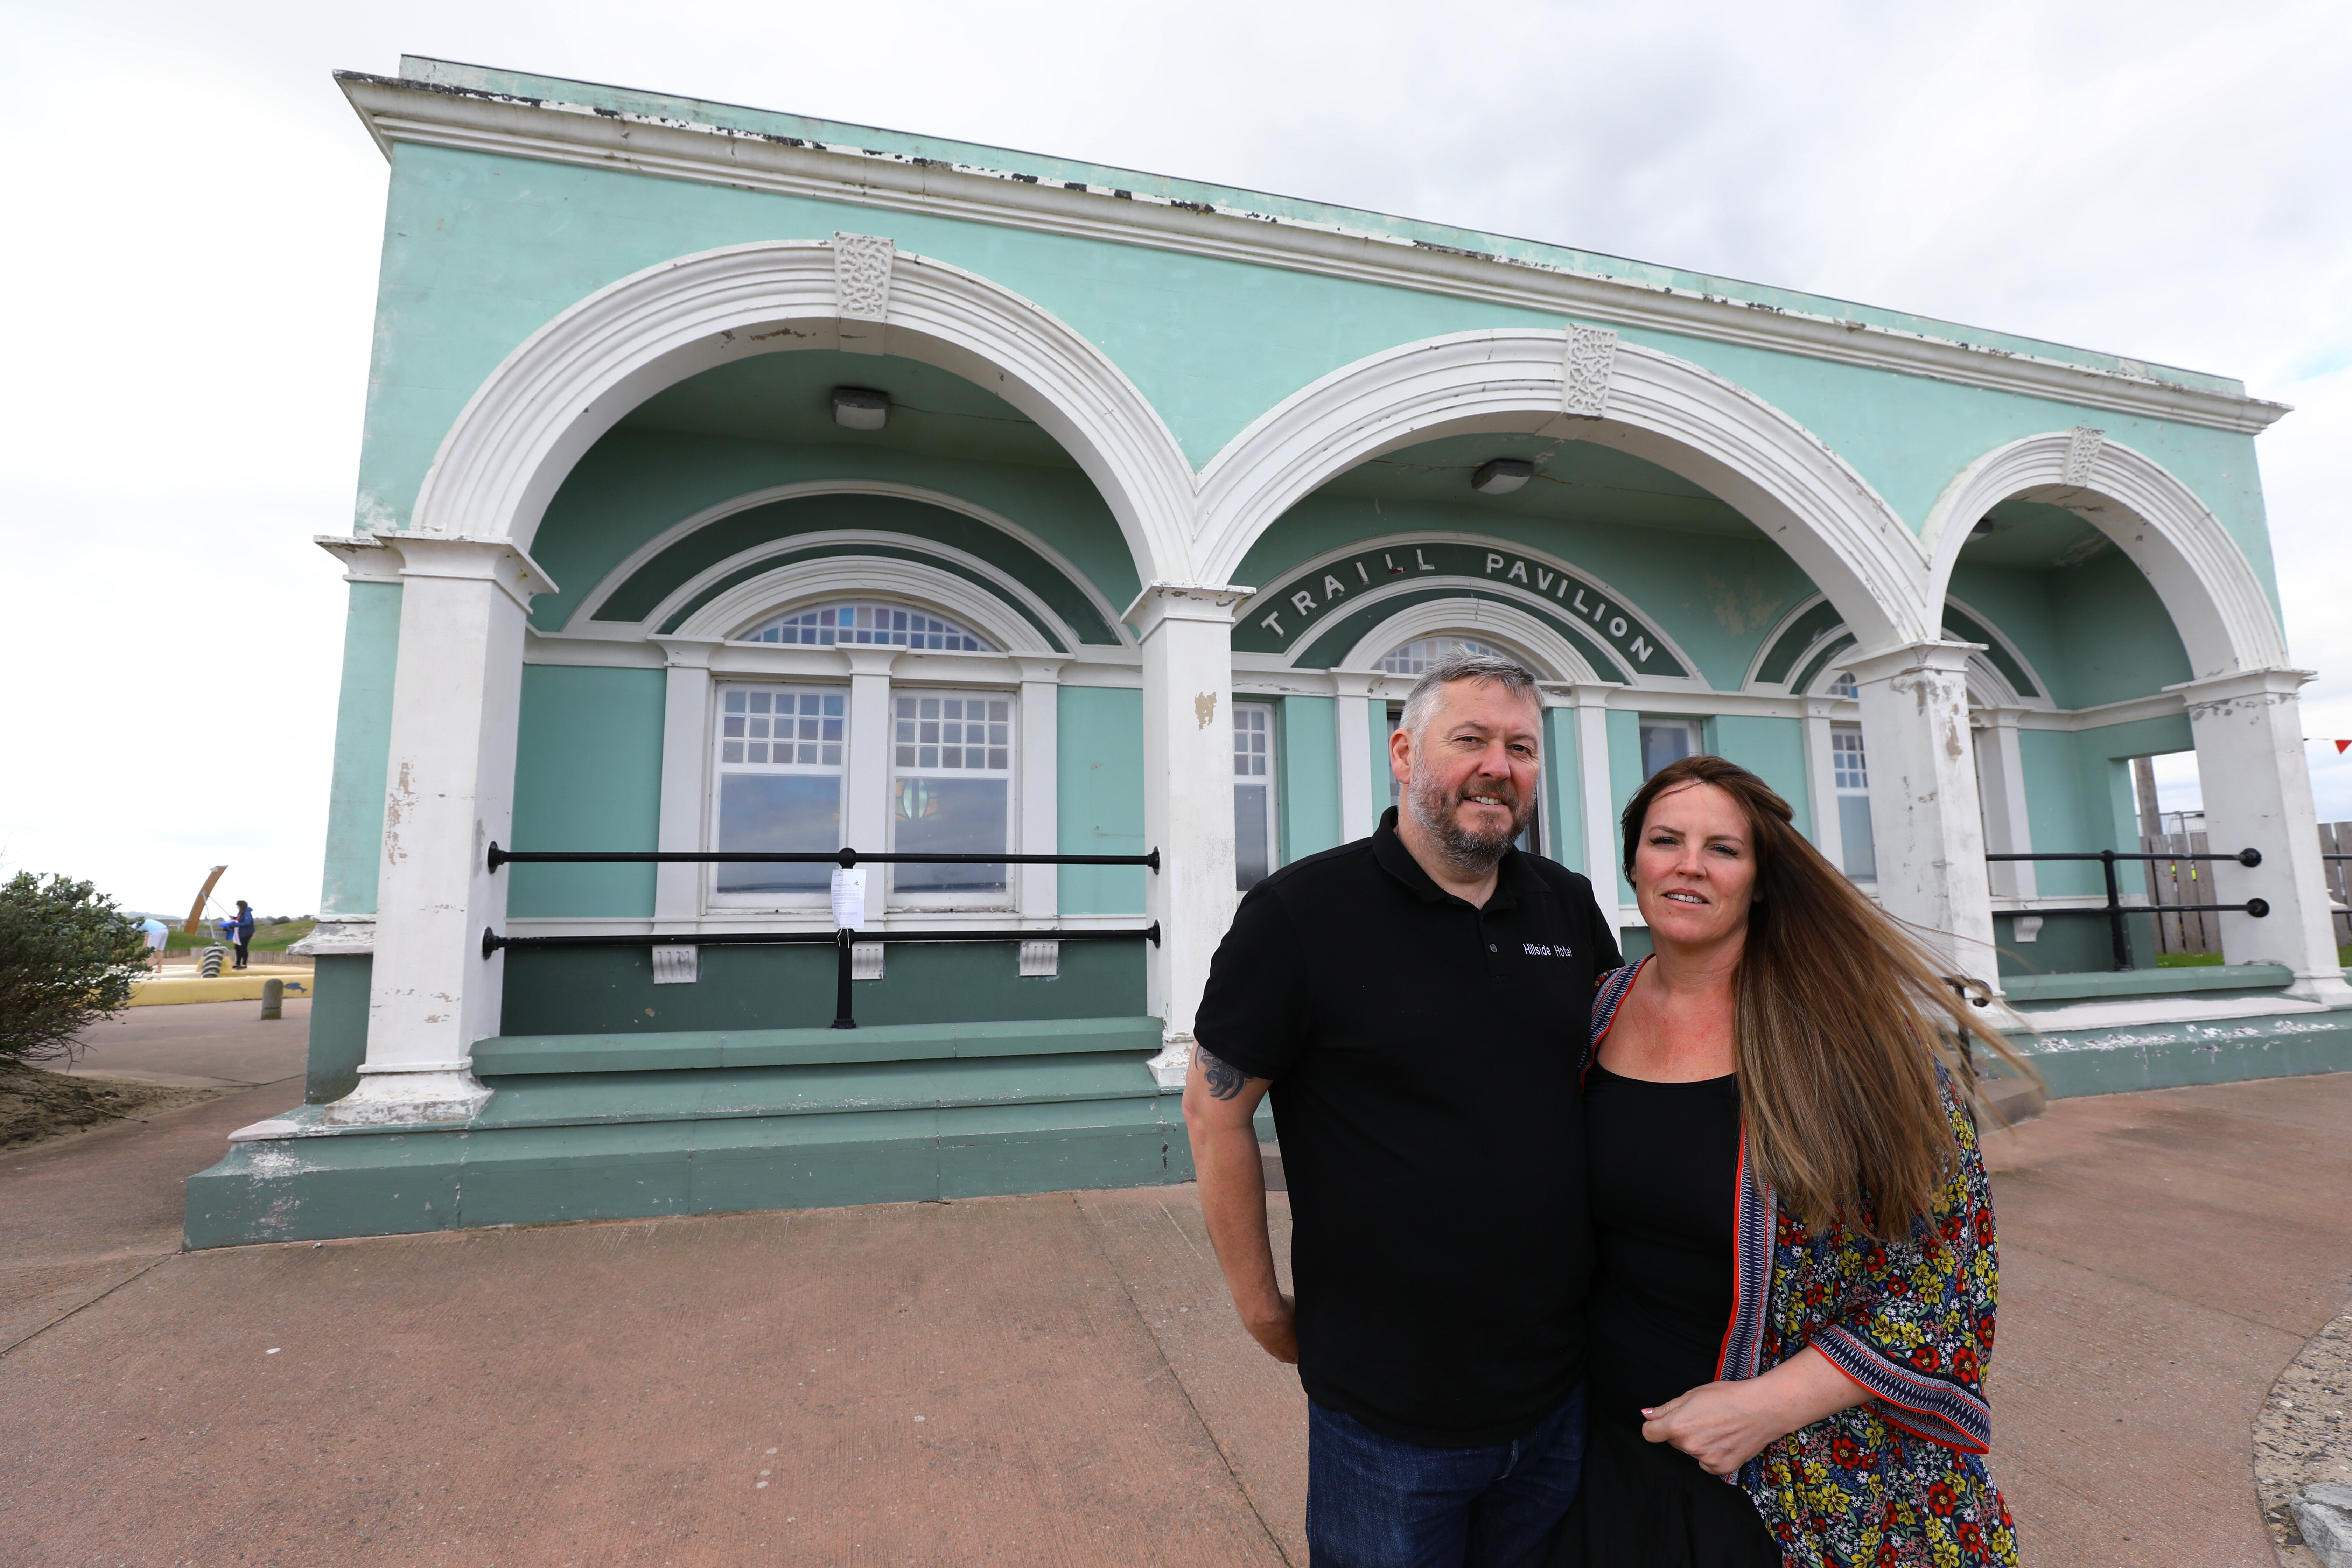 Owner Norman Braes and his wife Catherine at the Traill Pavillion